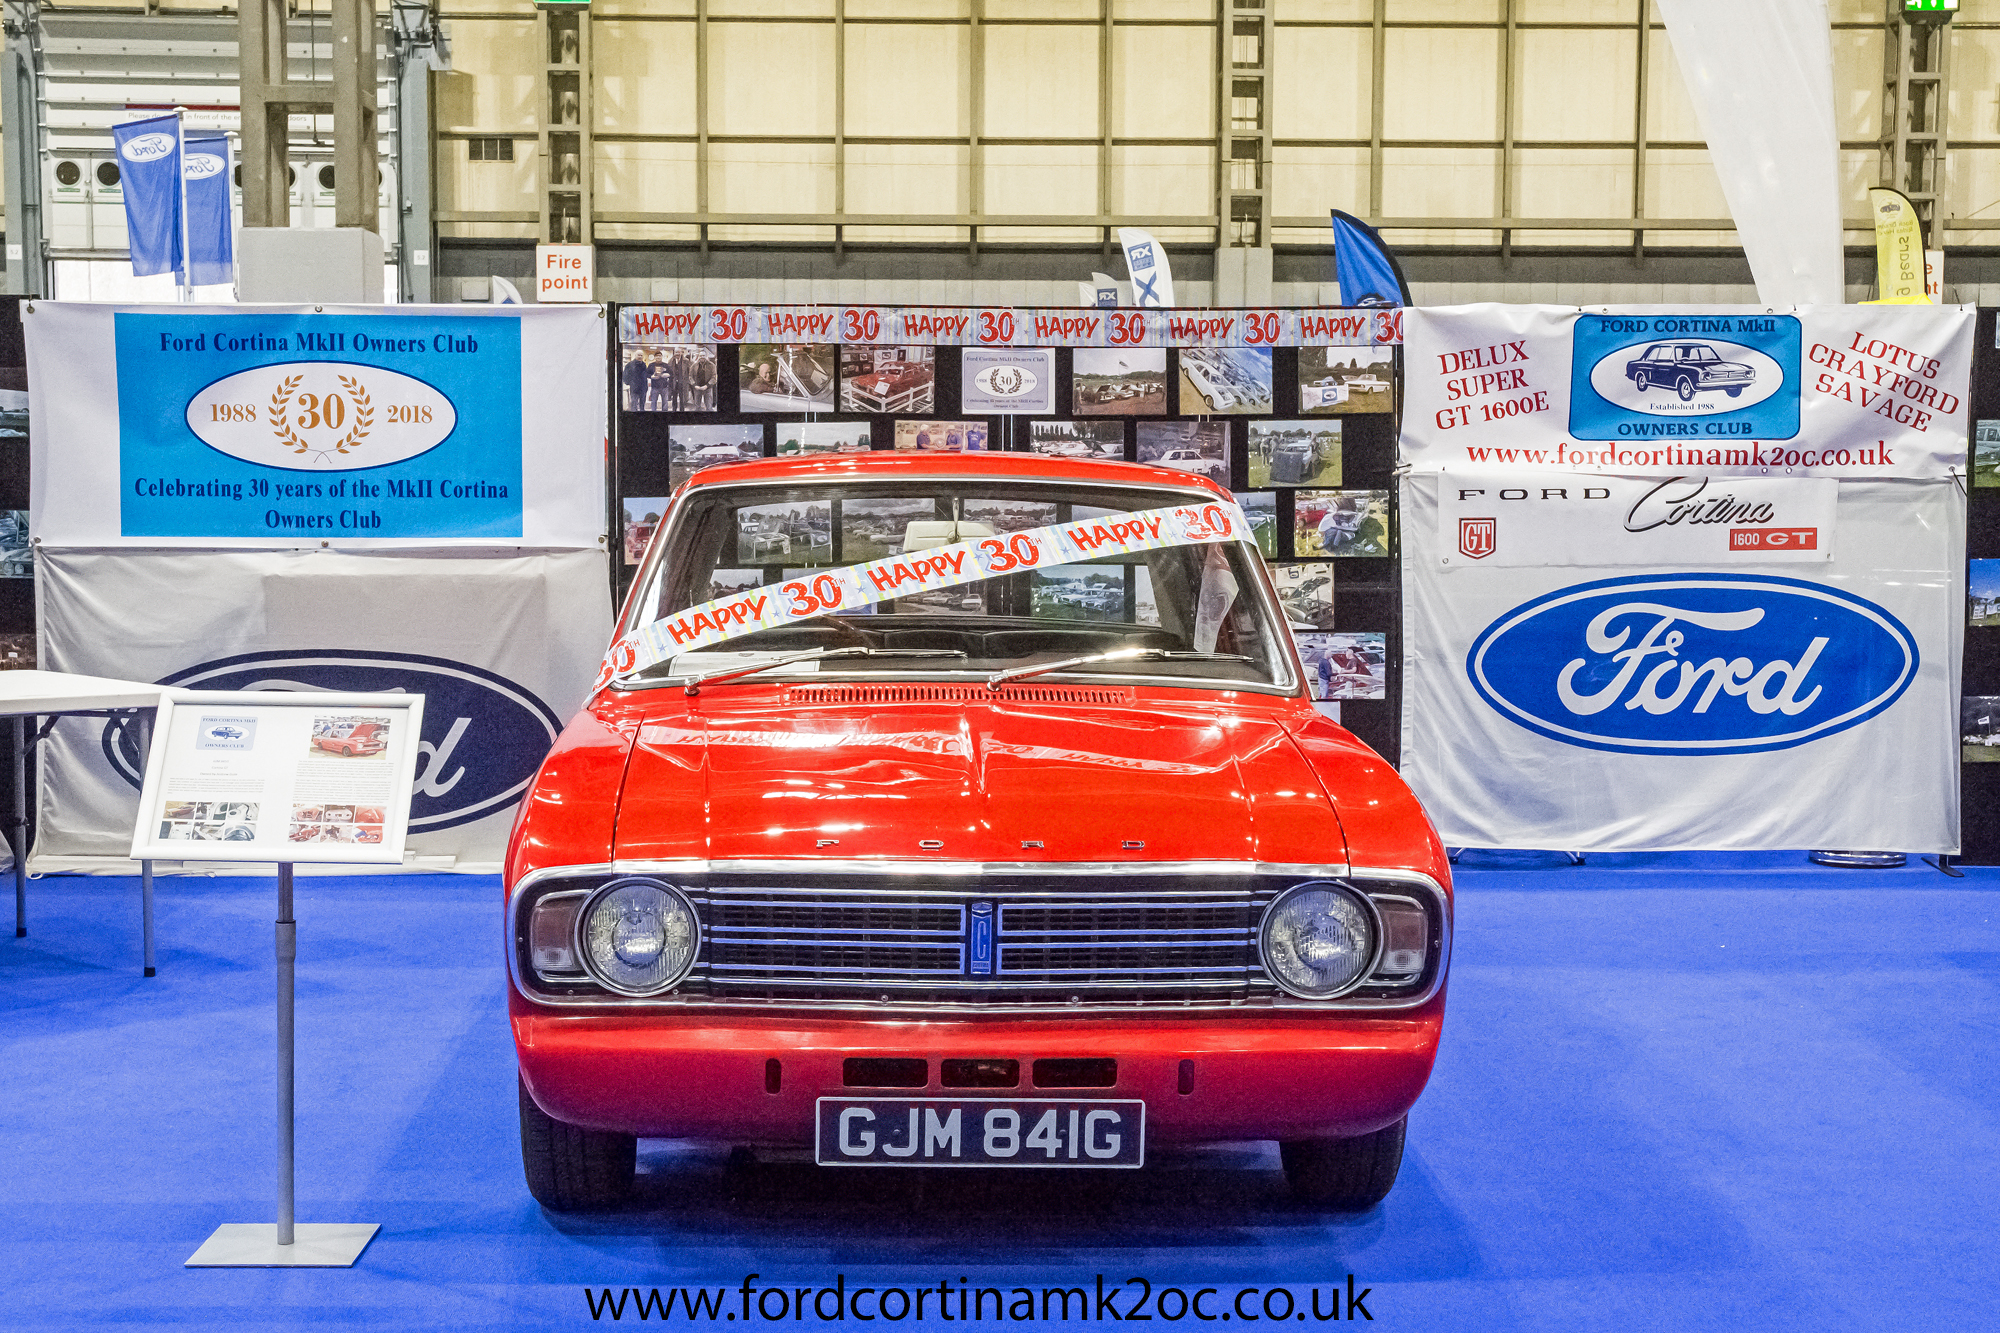 The Lancaster Classic Motor Show - Ford Cortina Mk2 Owners